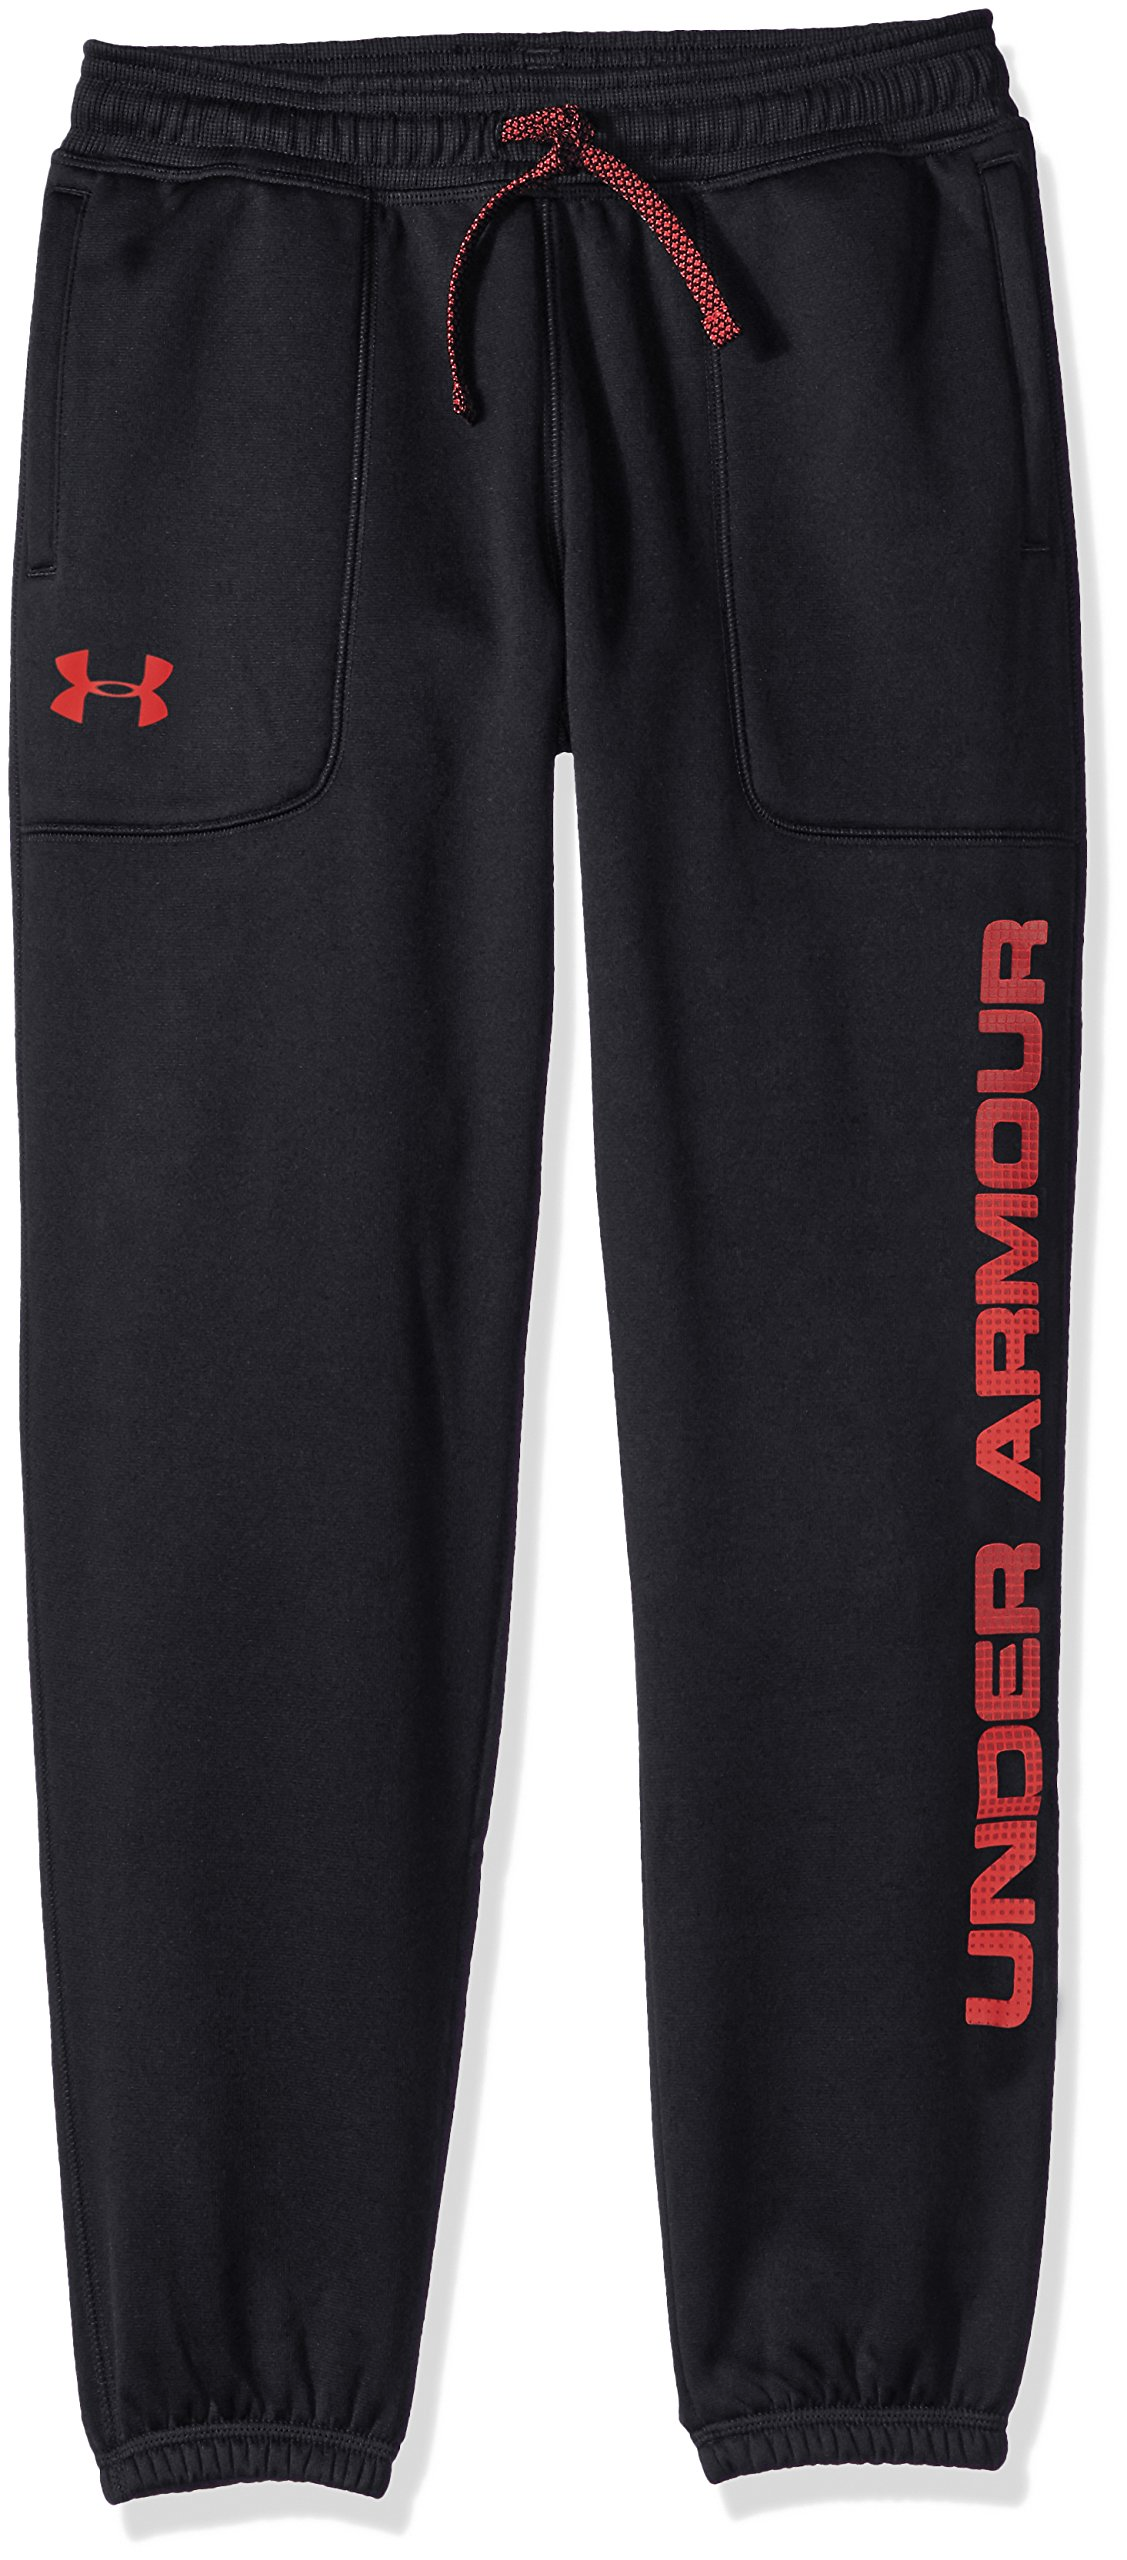 Under Armour Boys' Armour Fleece Branded Joggers,Black /Red, Youth Medium